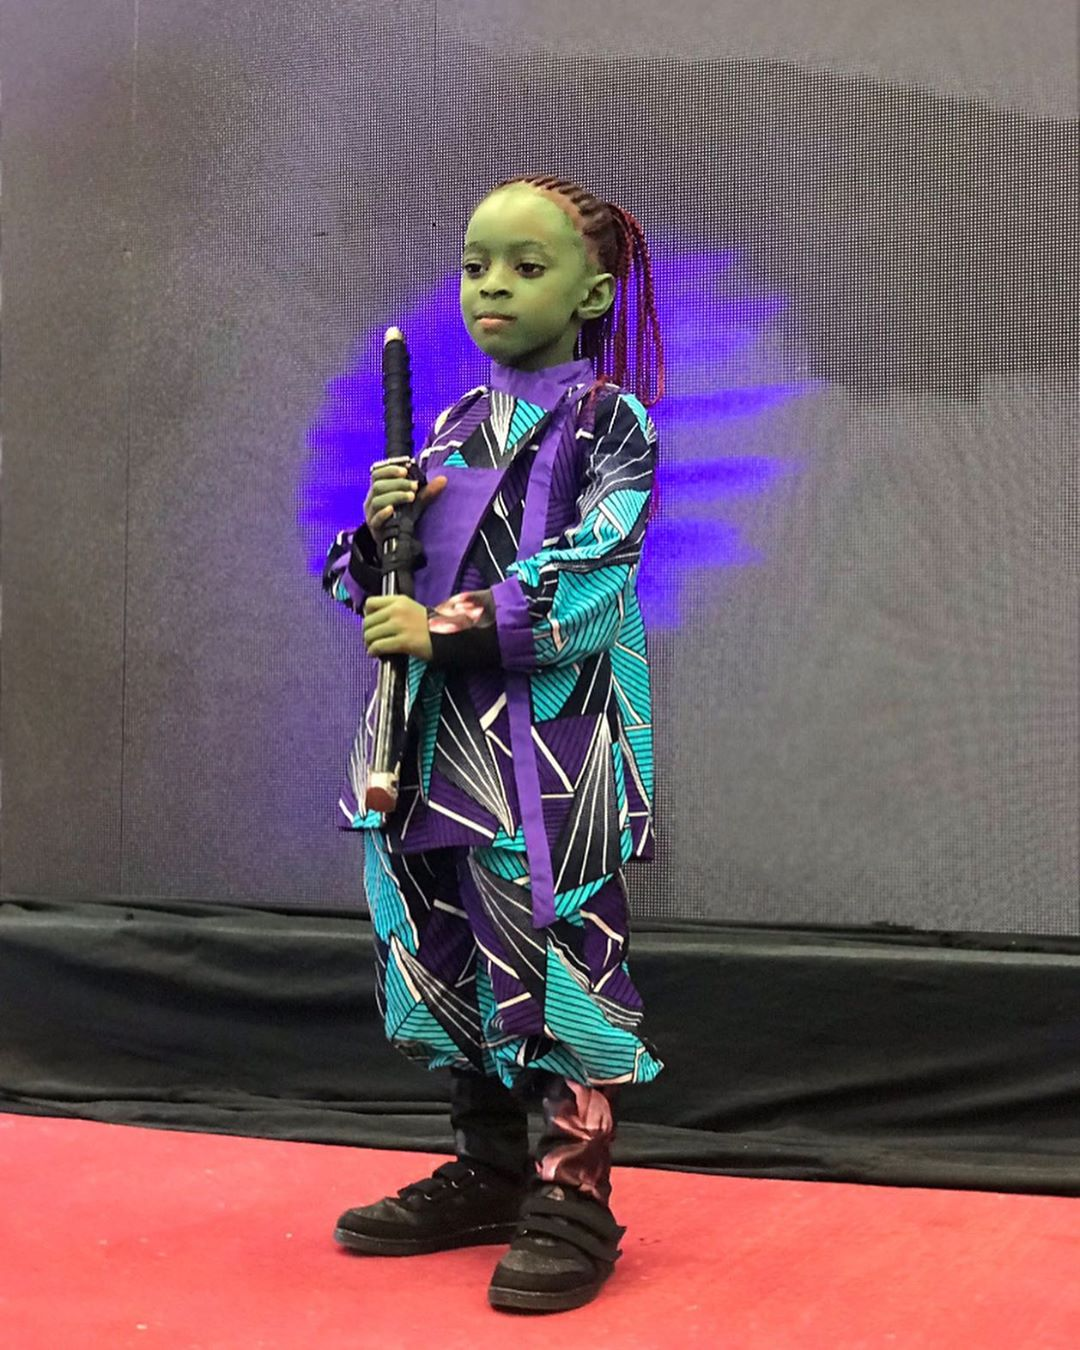 66769841 432801047310524 519349269950634276 n - Lagos Comic Con 2019: Dates, How To Register For Free And More Details